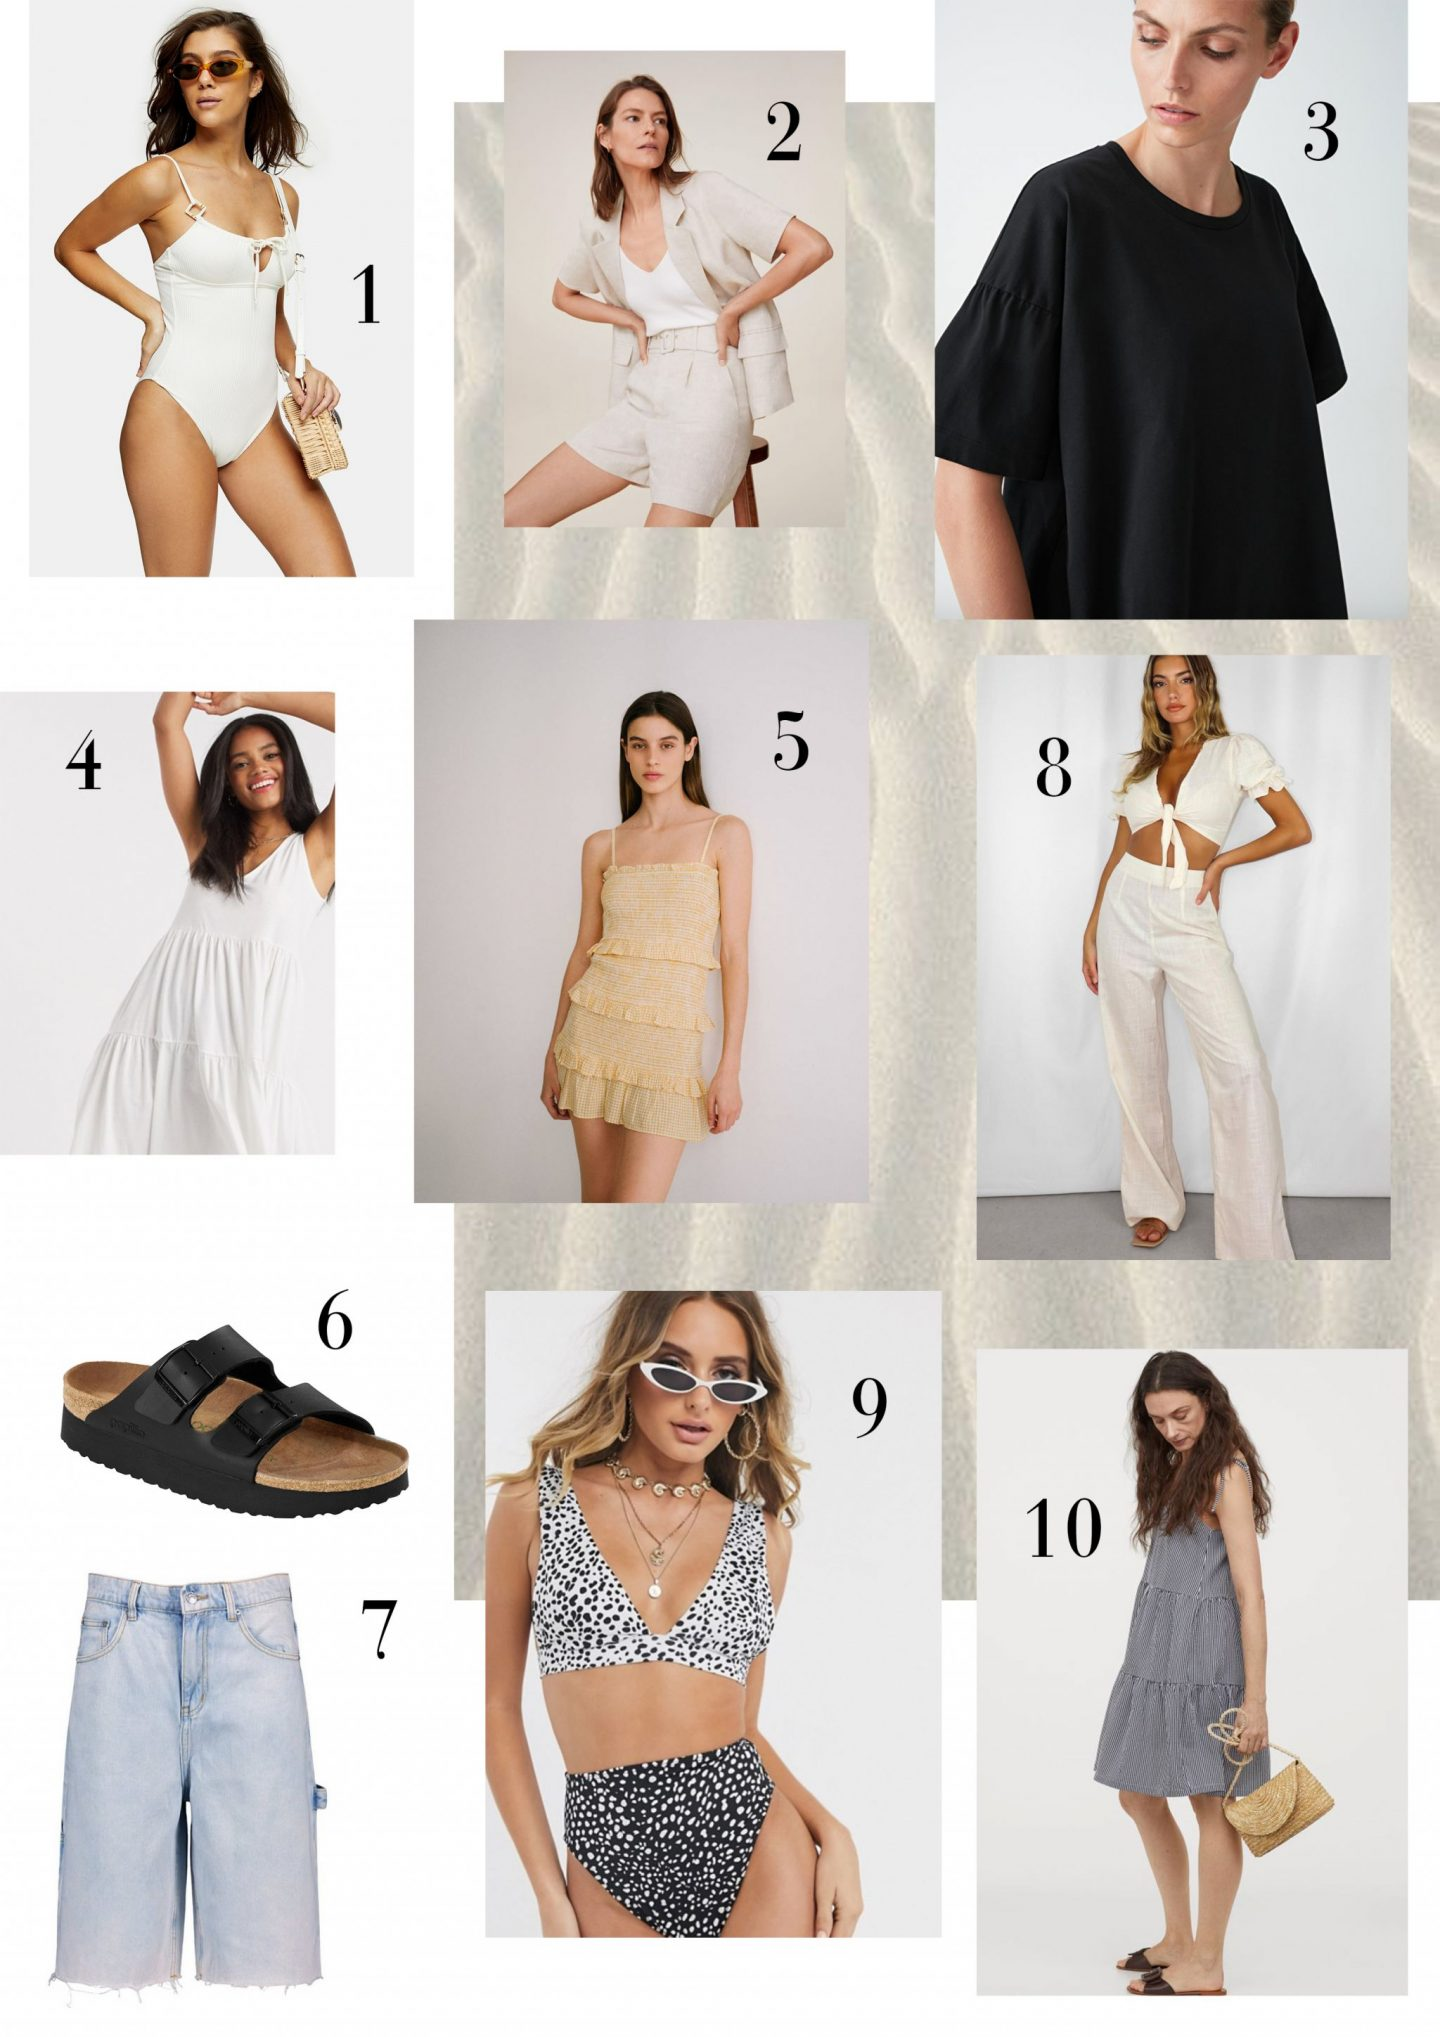 With temperatures that reached over 30C this week in the UK, I have found some bits trending right now that will be the perfect heatwave essentials ...